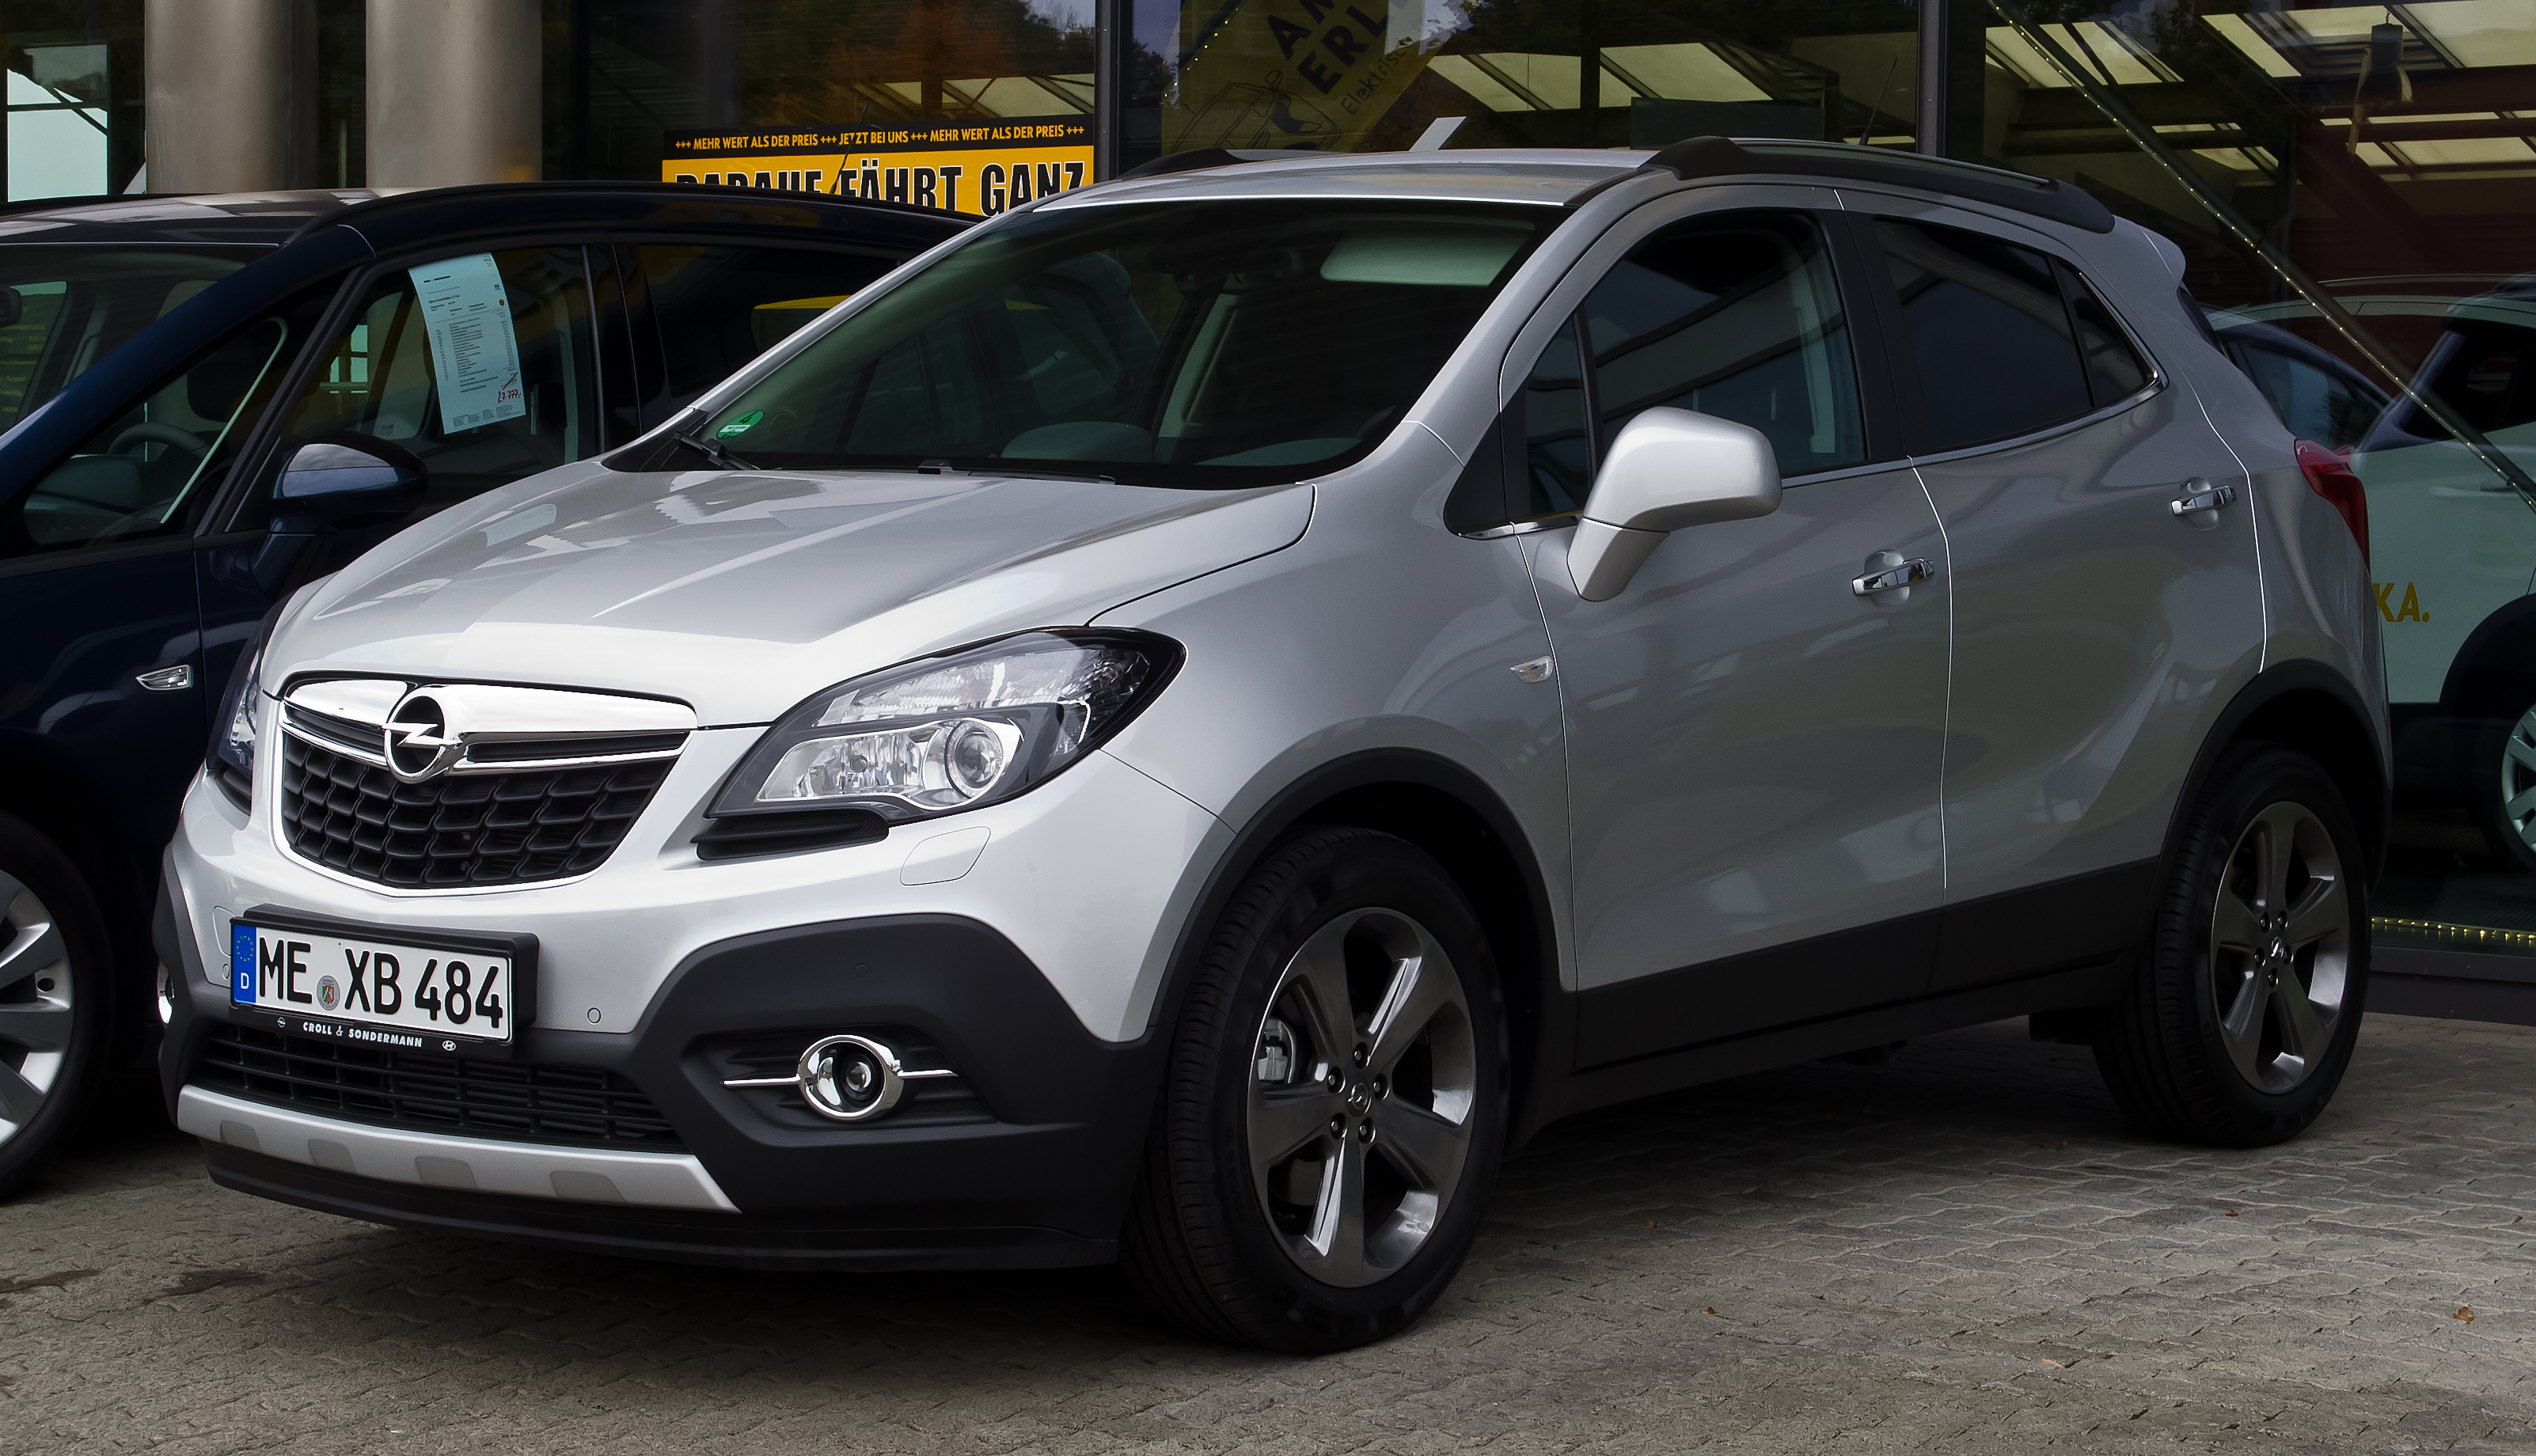 opel mokka - The Truth About Cars